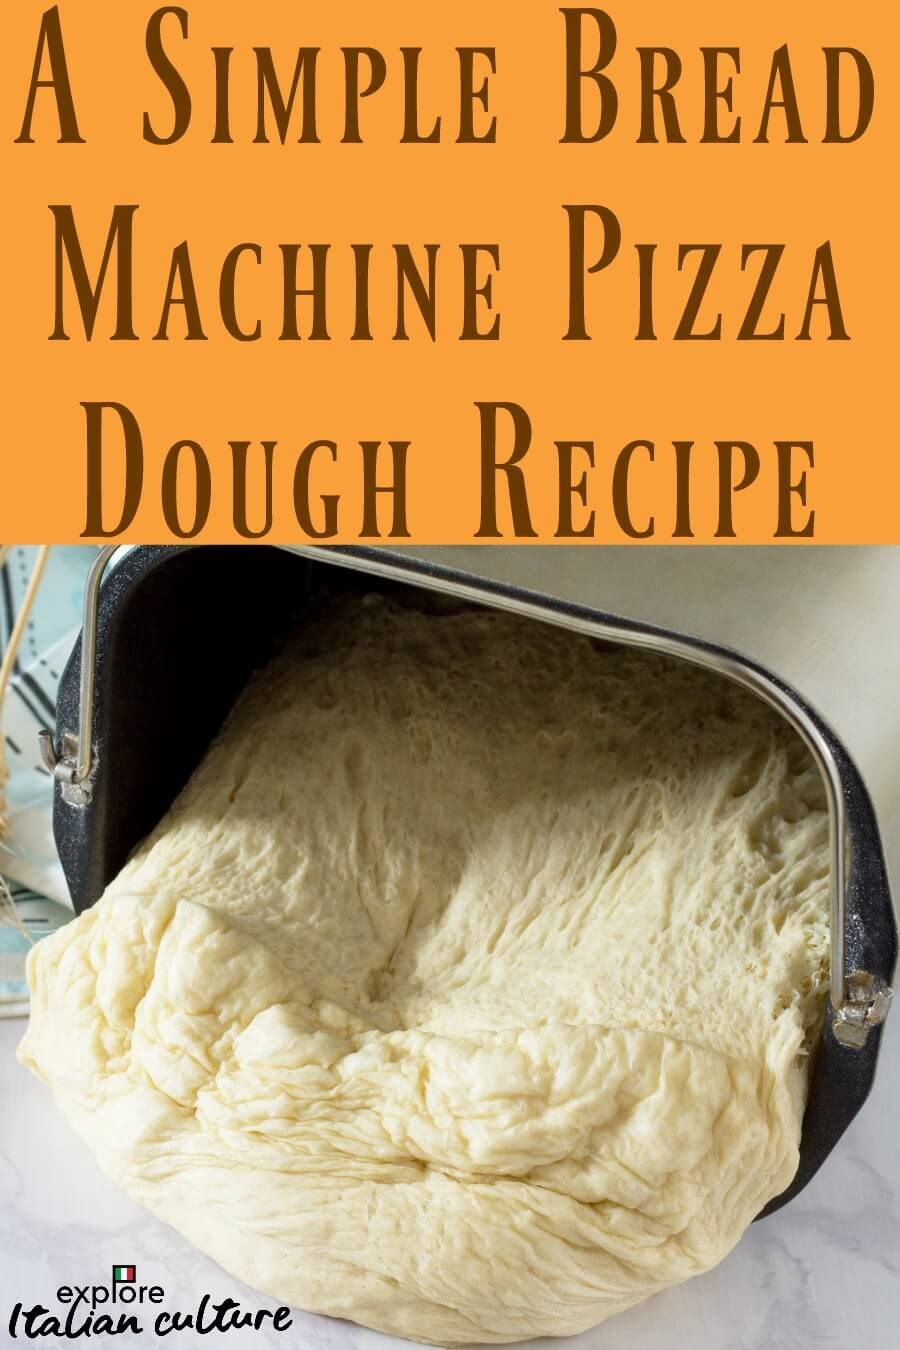 A simple to make bread machine pizza dough recipe.